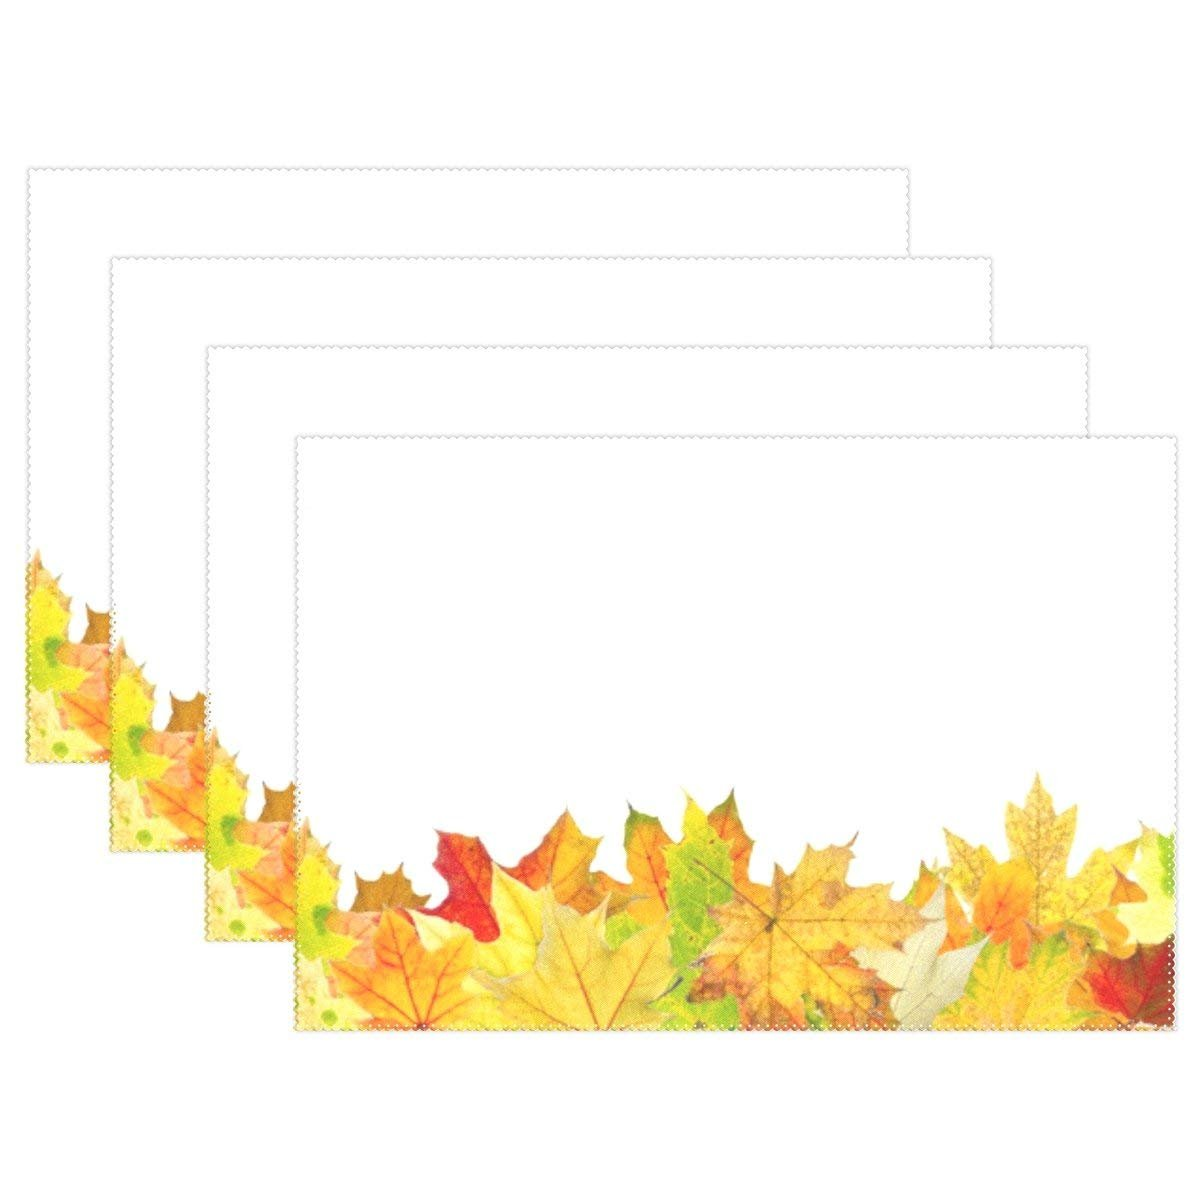 Autumn Leaves Lying On Ground Placemats Table Place Mat for Kitchen Dining Room Polyester 12 x 18 inches Set of 4